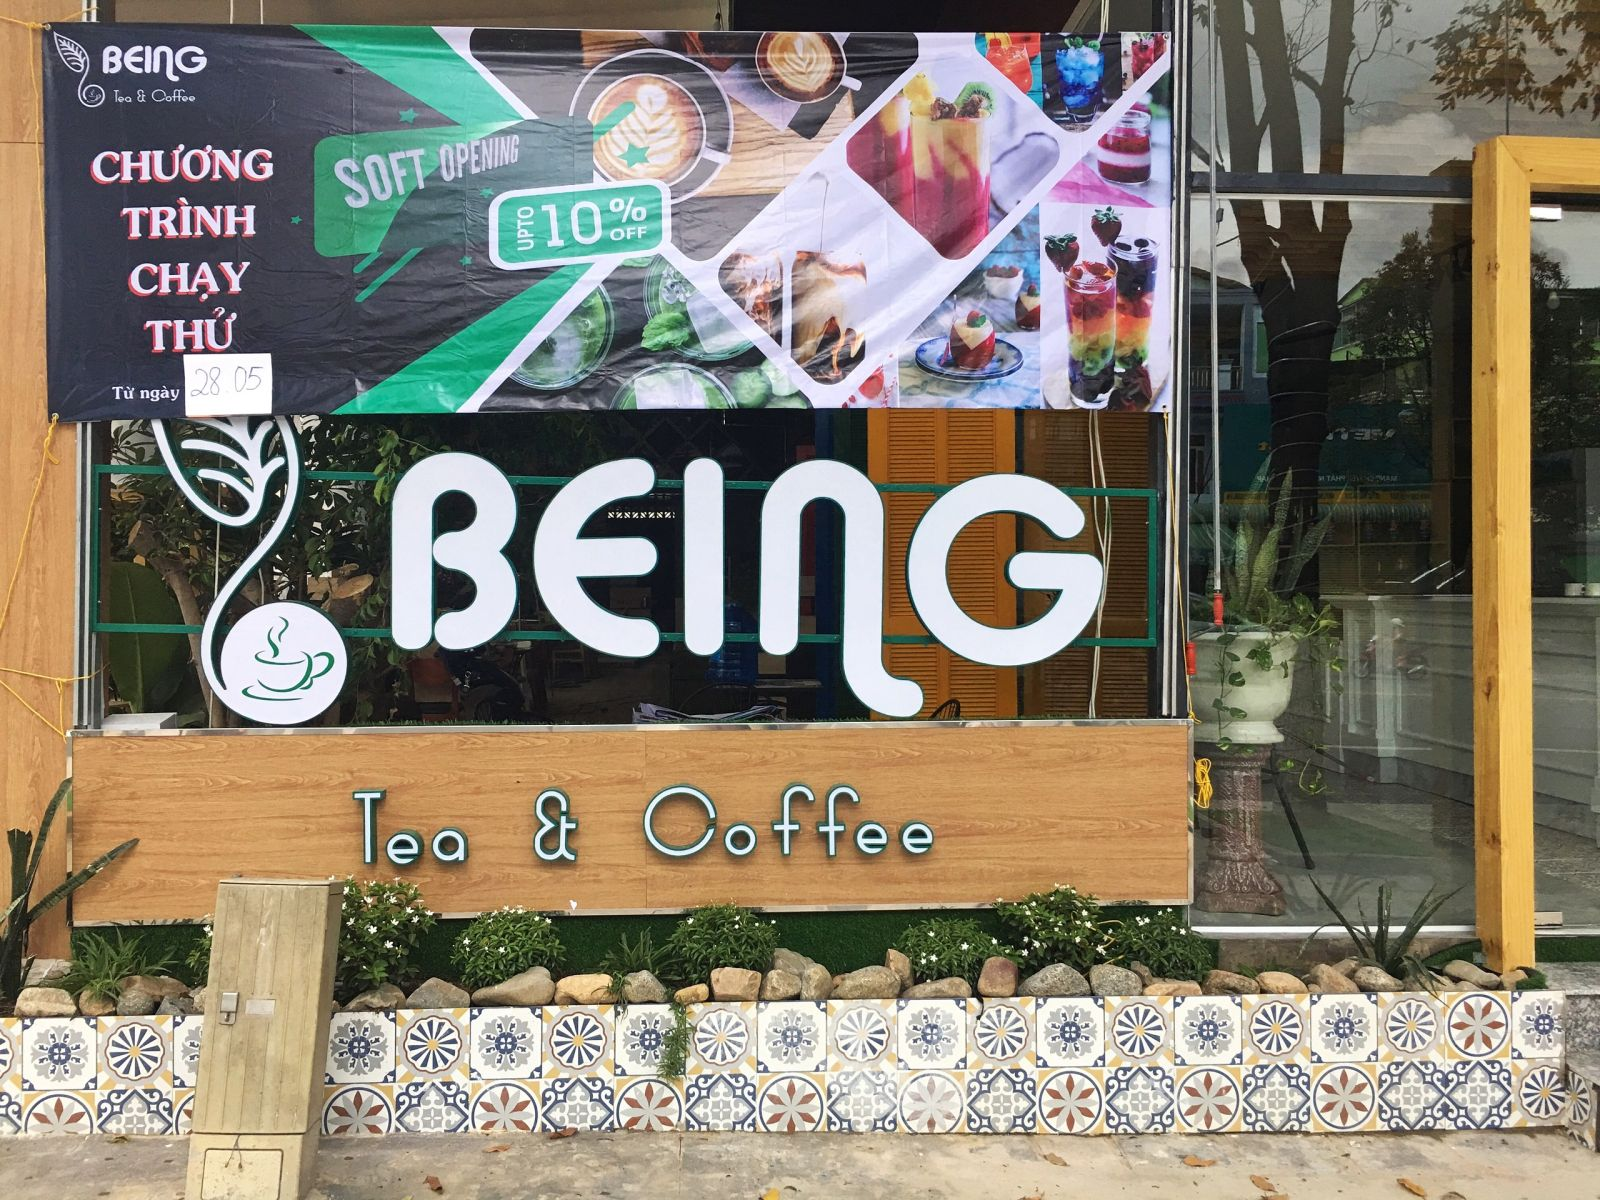 noi-that-quan-cafe-being-coffee-binh-duong-1